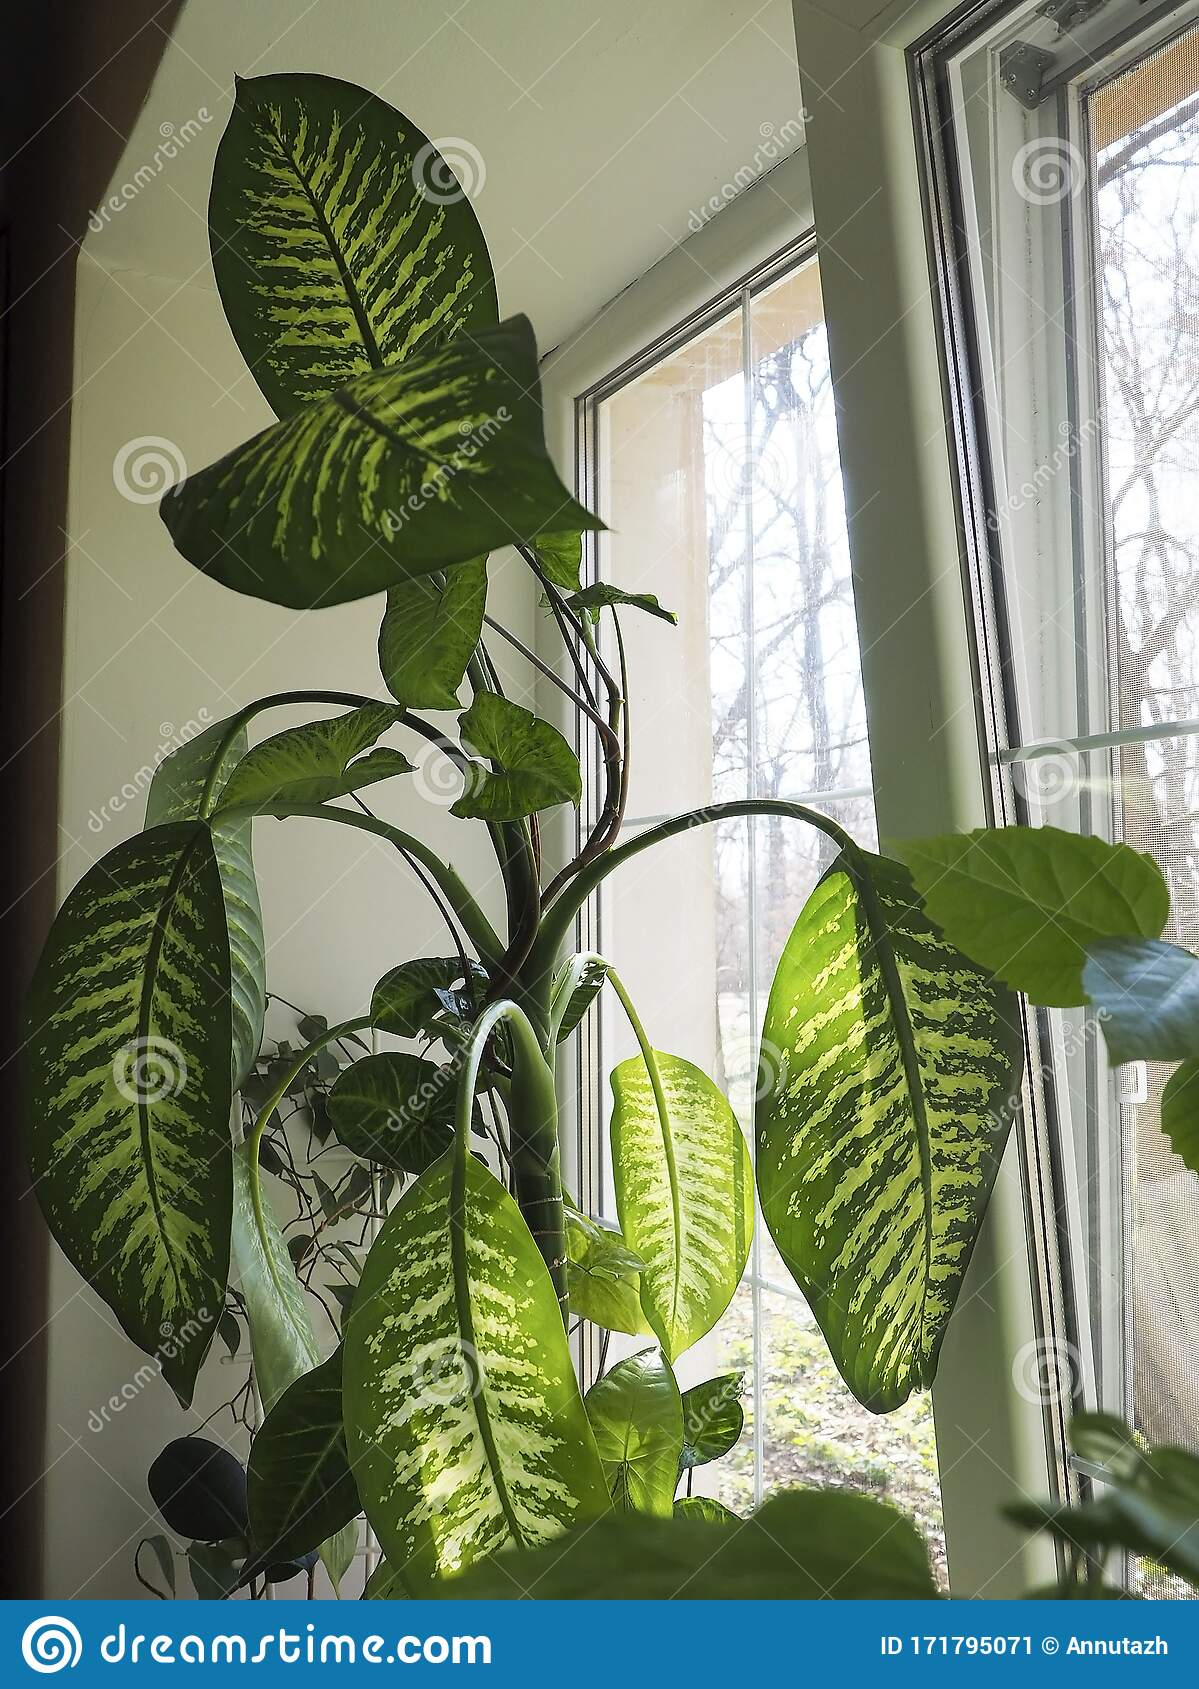 Indoor Plants With Large Leaves Of The Window Stock Image Image Of Decor Urban 171795071